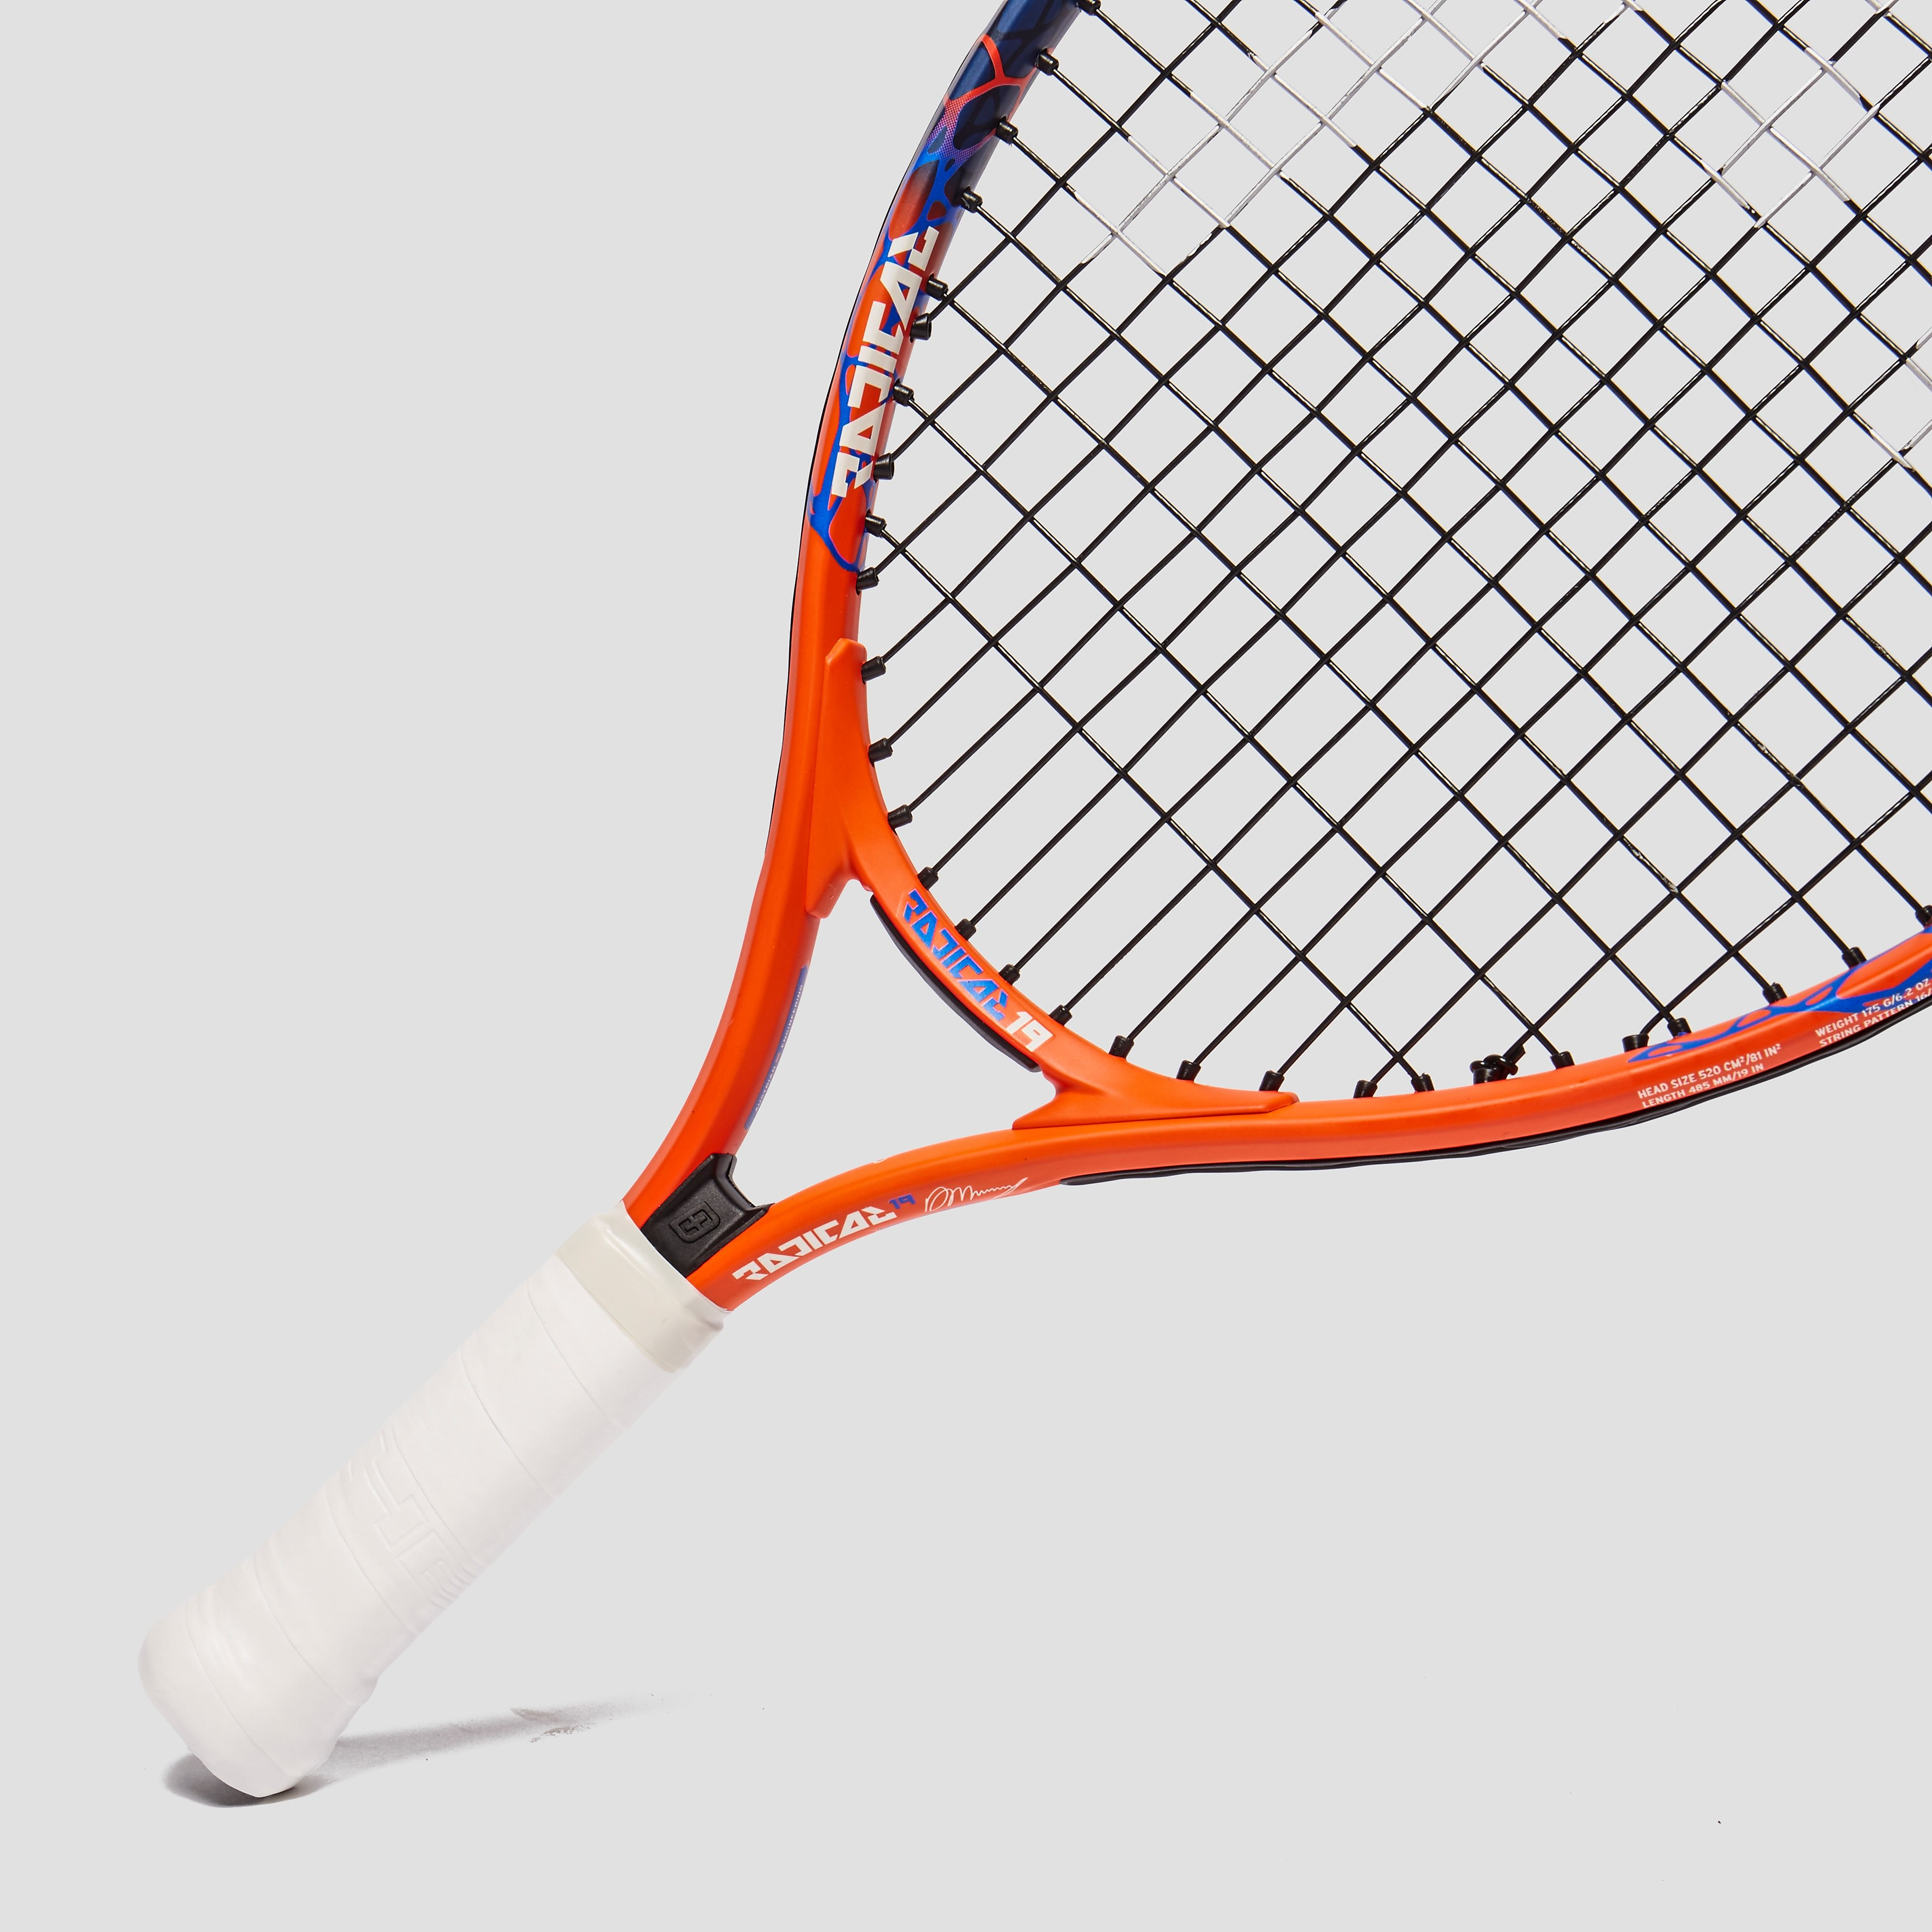 "Head Radical 19"" Junior Tennis Racket"